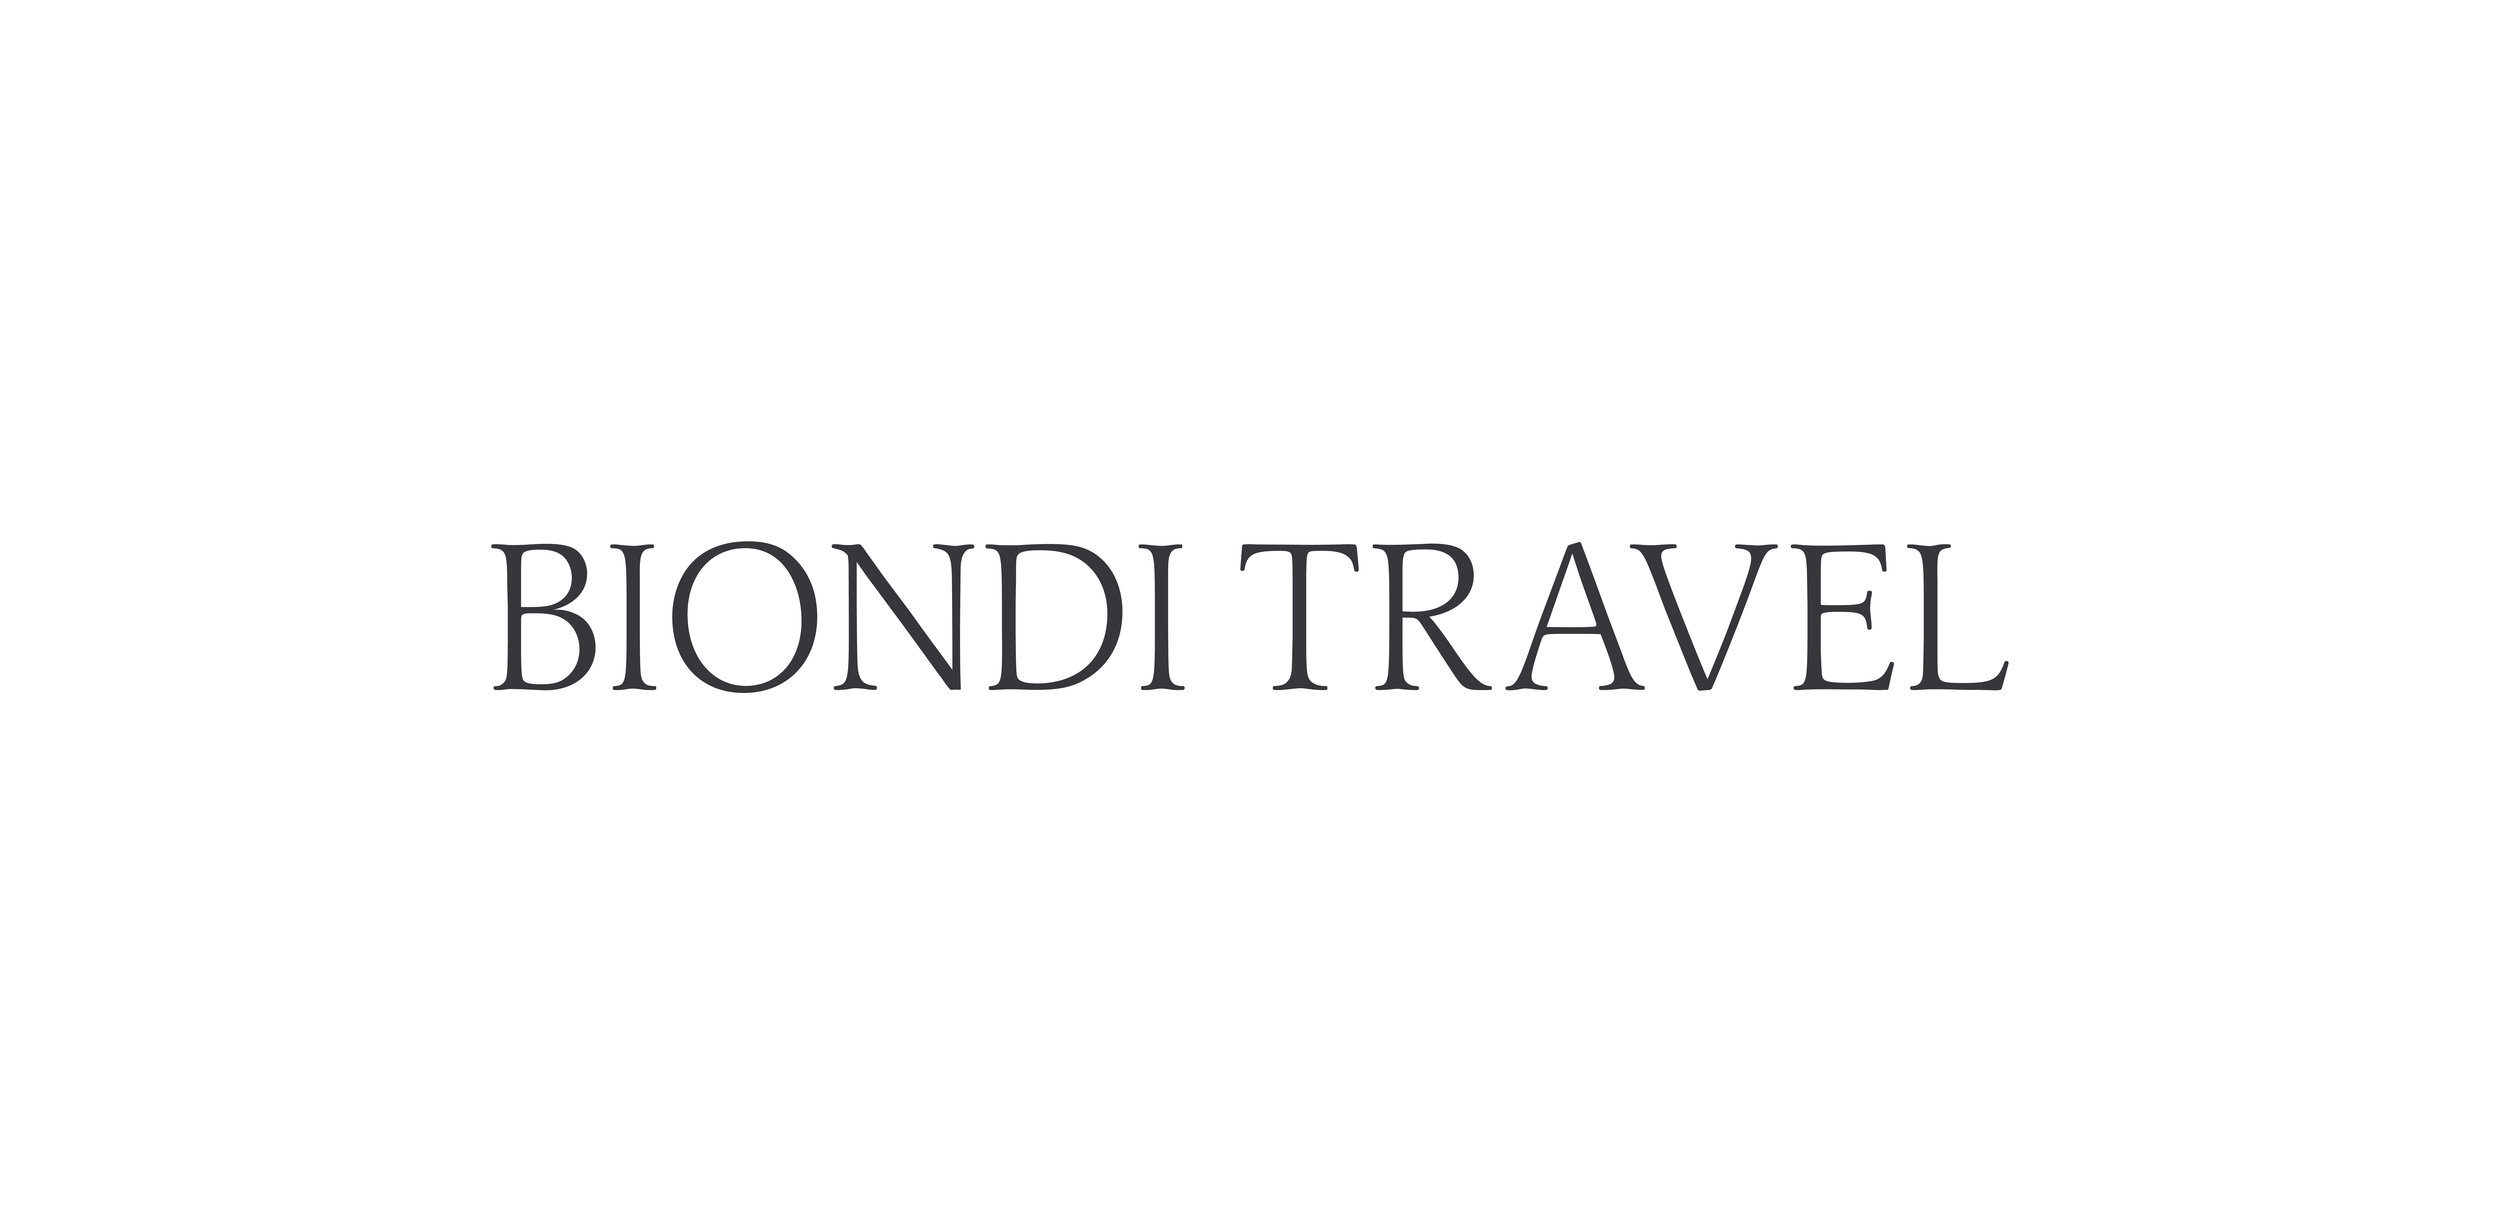 Biondi travel Full Branding Package & Logo